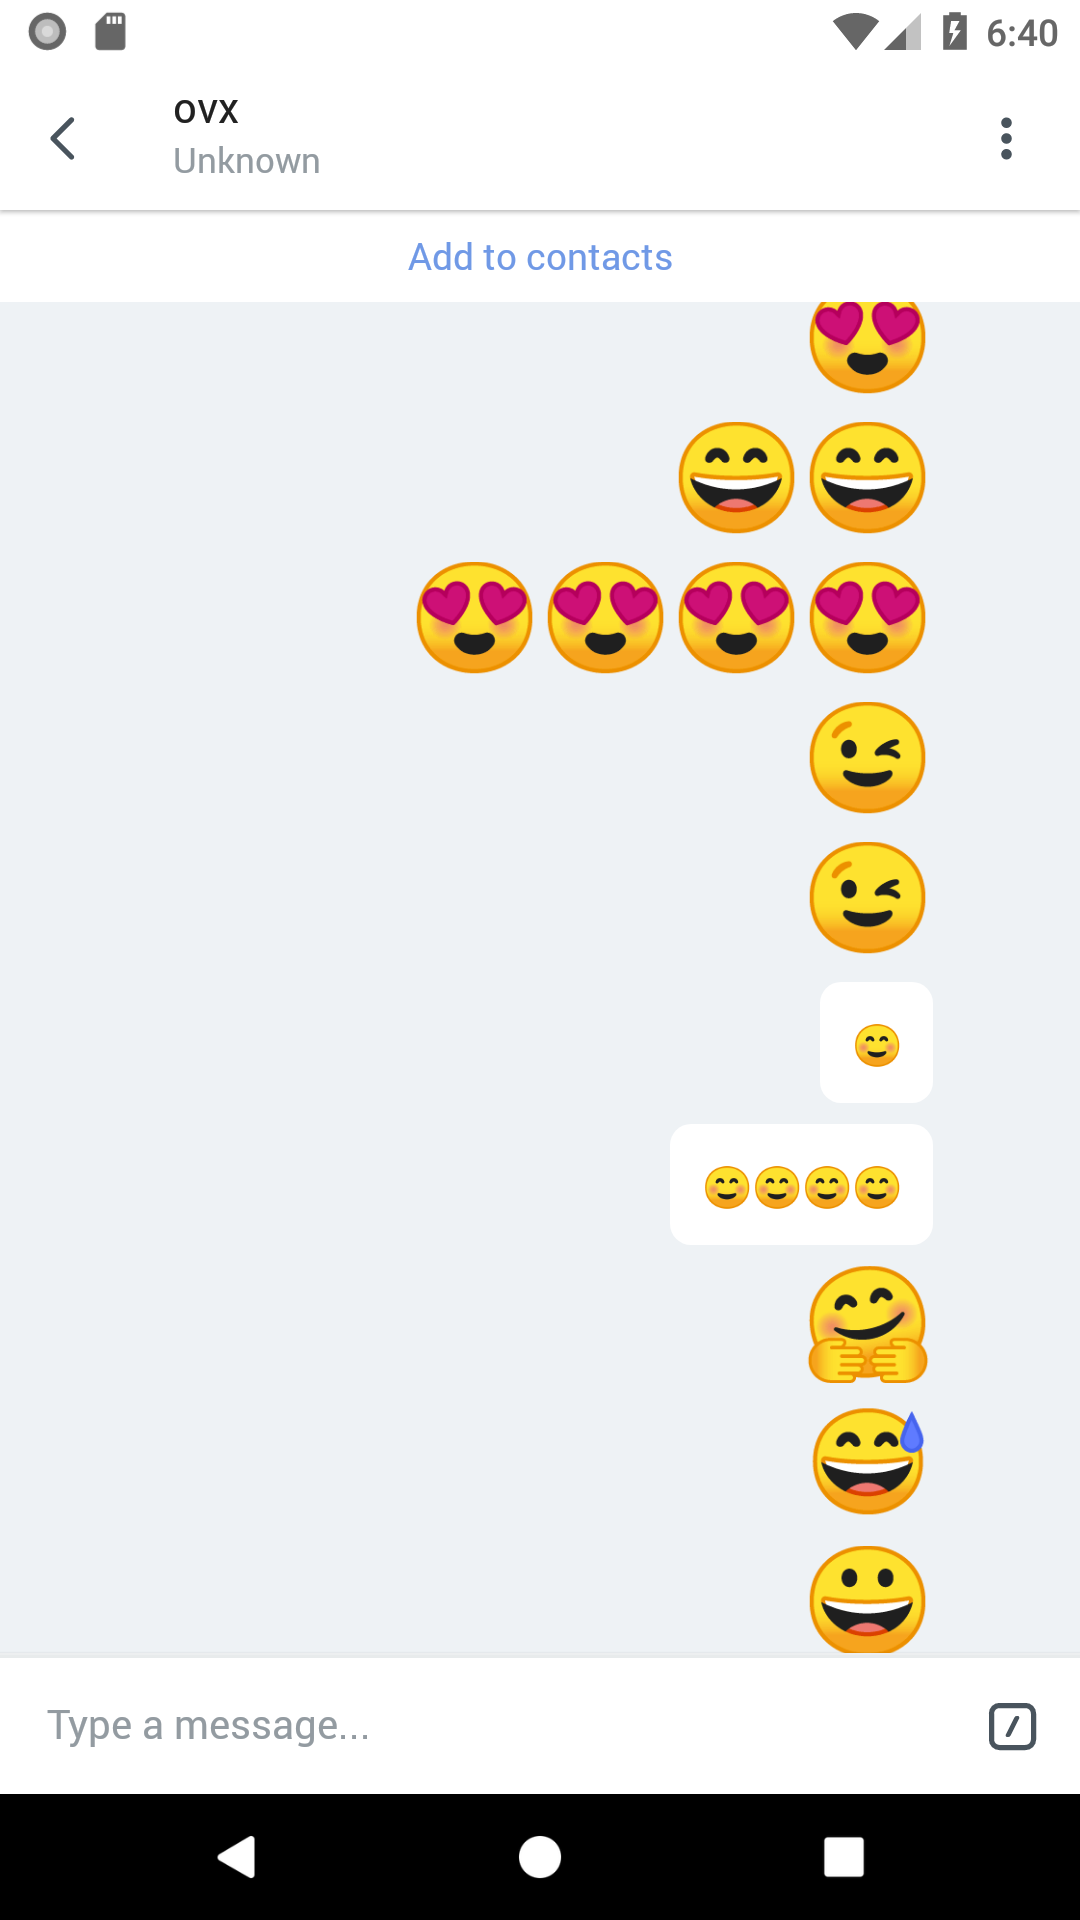 If a message contains only an emoji, show it without chat bubble